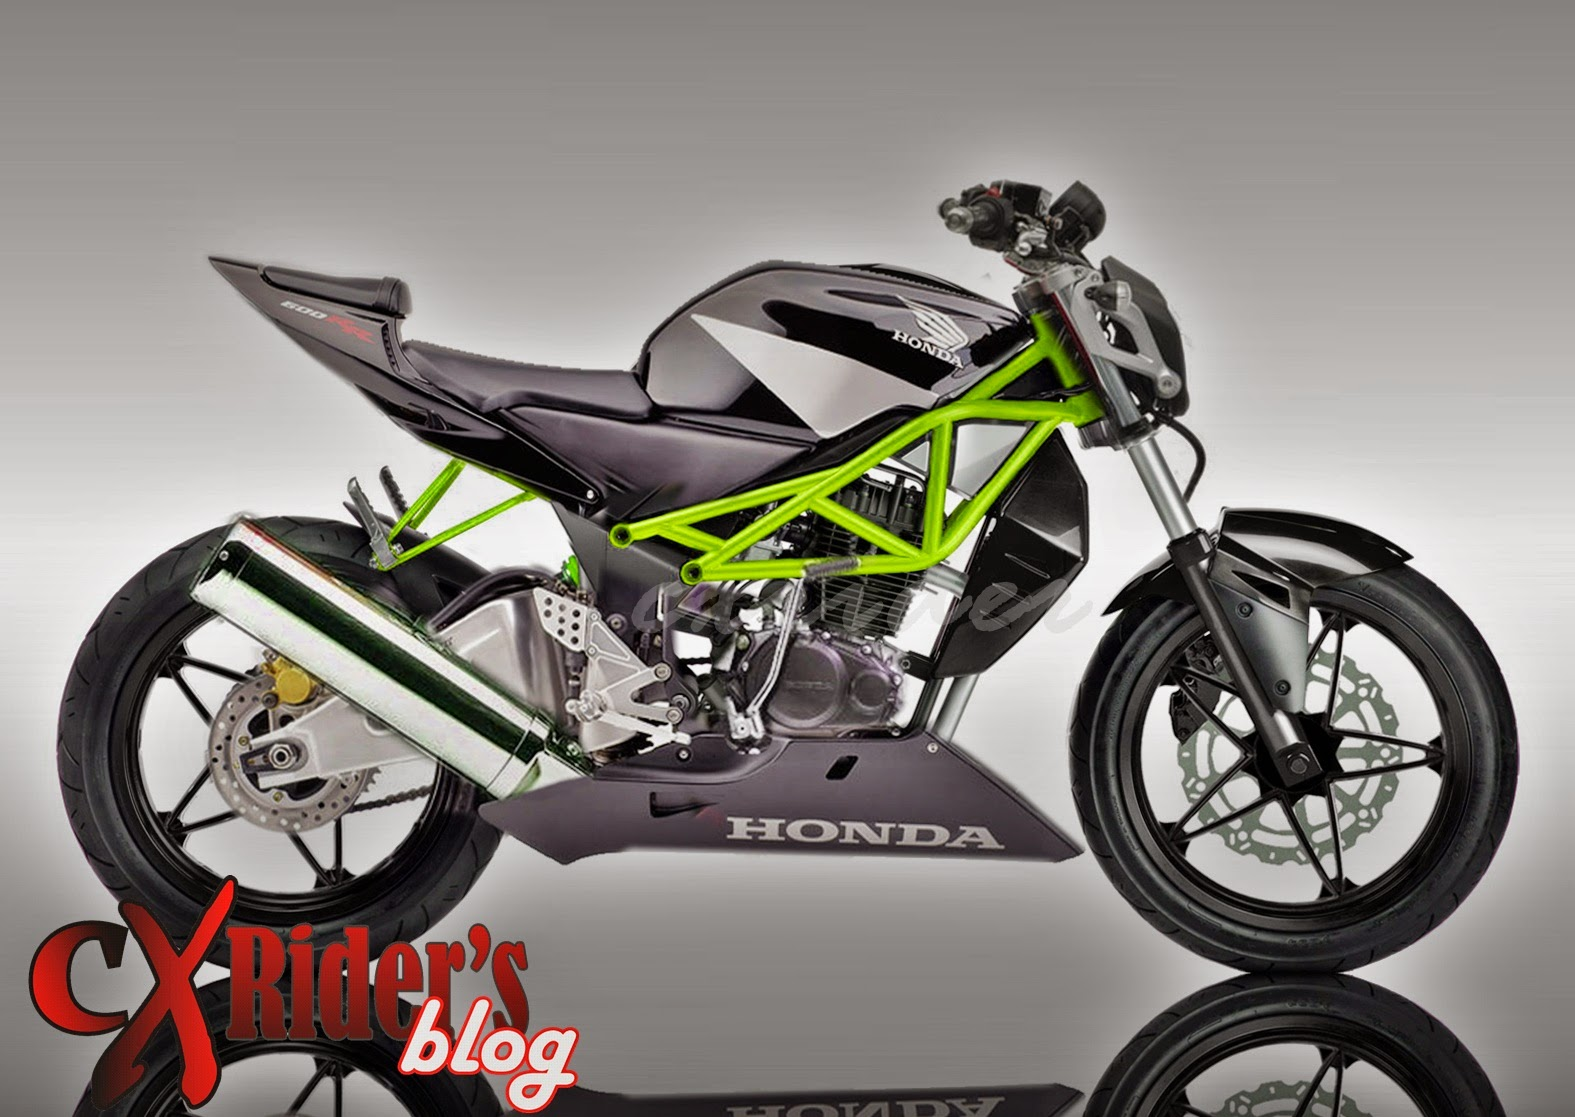 Biaya Modifikasi Motor Tiger Street Fighter Terlengkap Motor Cross